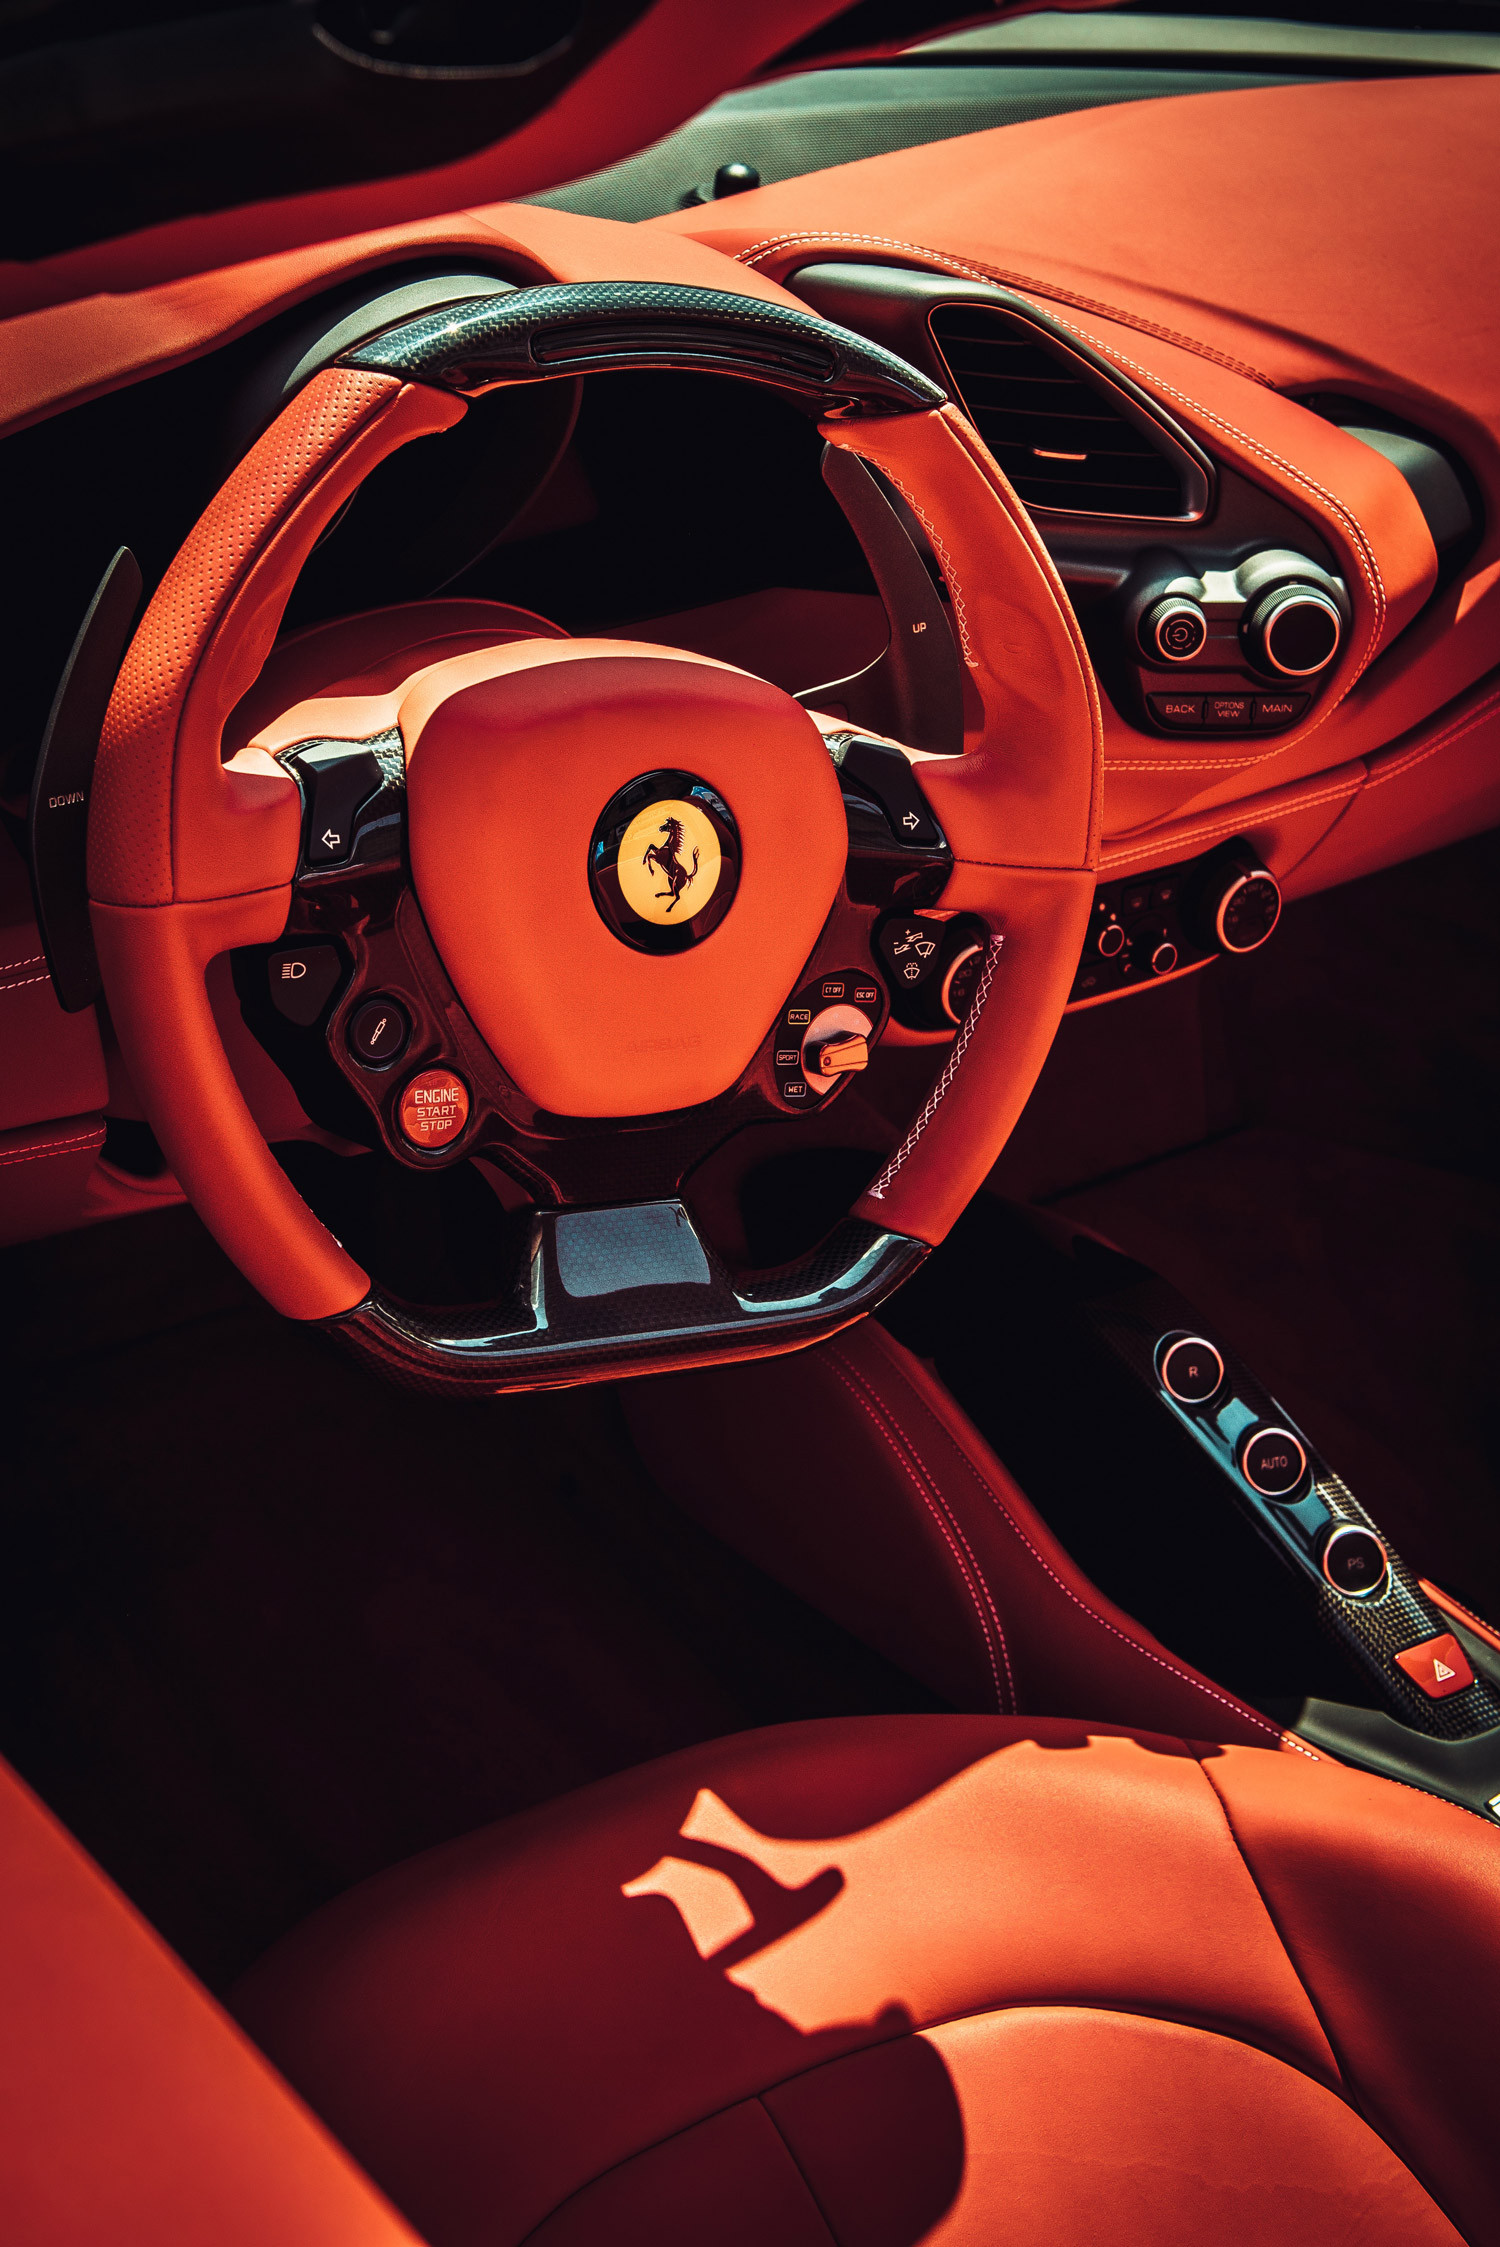 Drivers seat of a ferrari